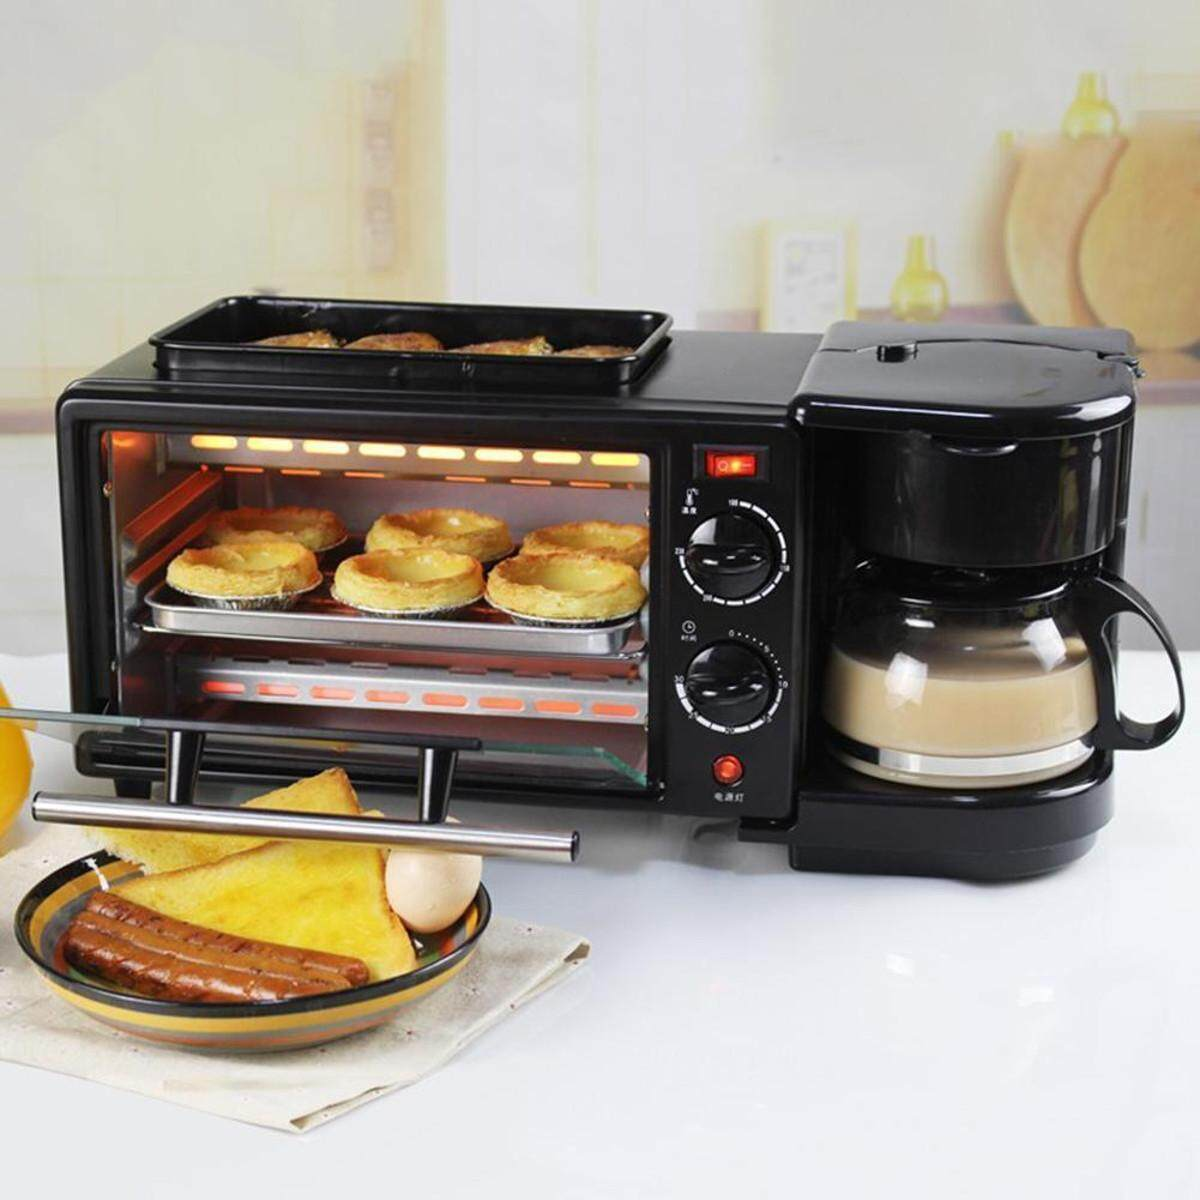 ยี่ห้อนี้ดีไหม  นครปฐม 3 In 1 Breakfast Machine Coffee Maker Frying Pan Bread Toaster Electric Oven